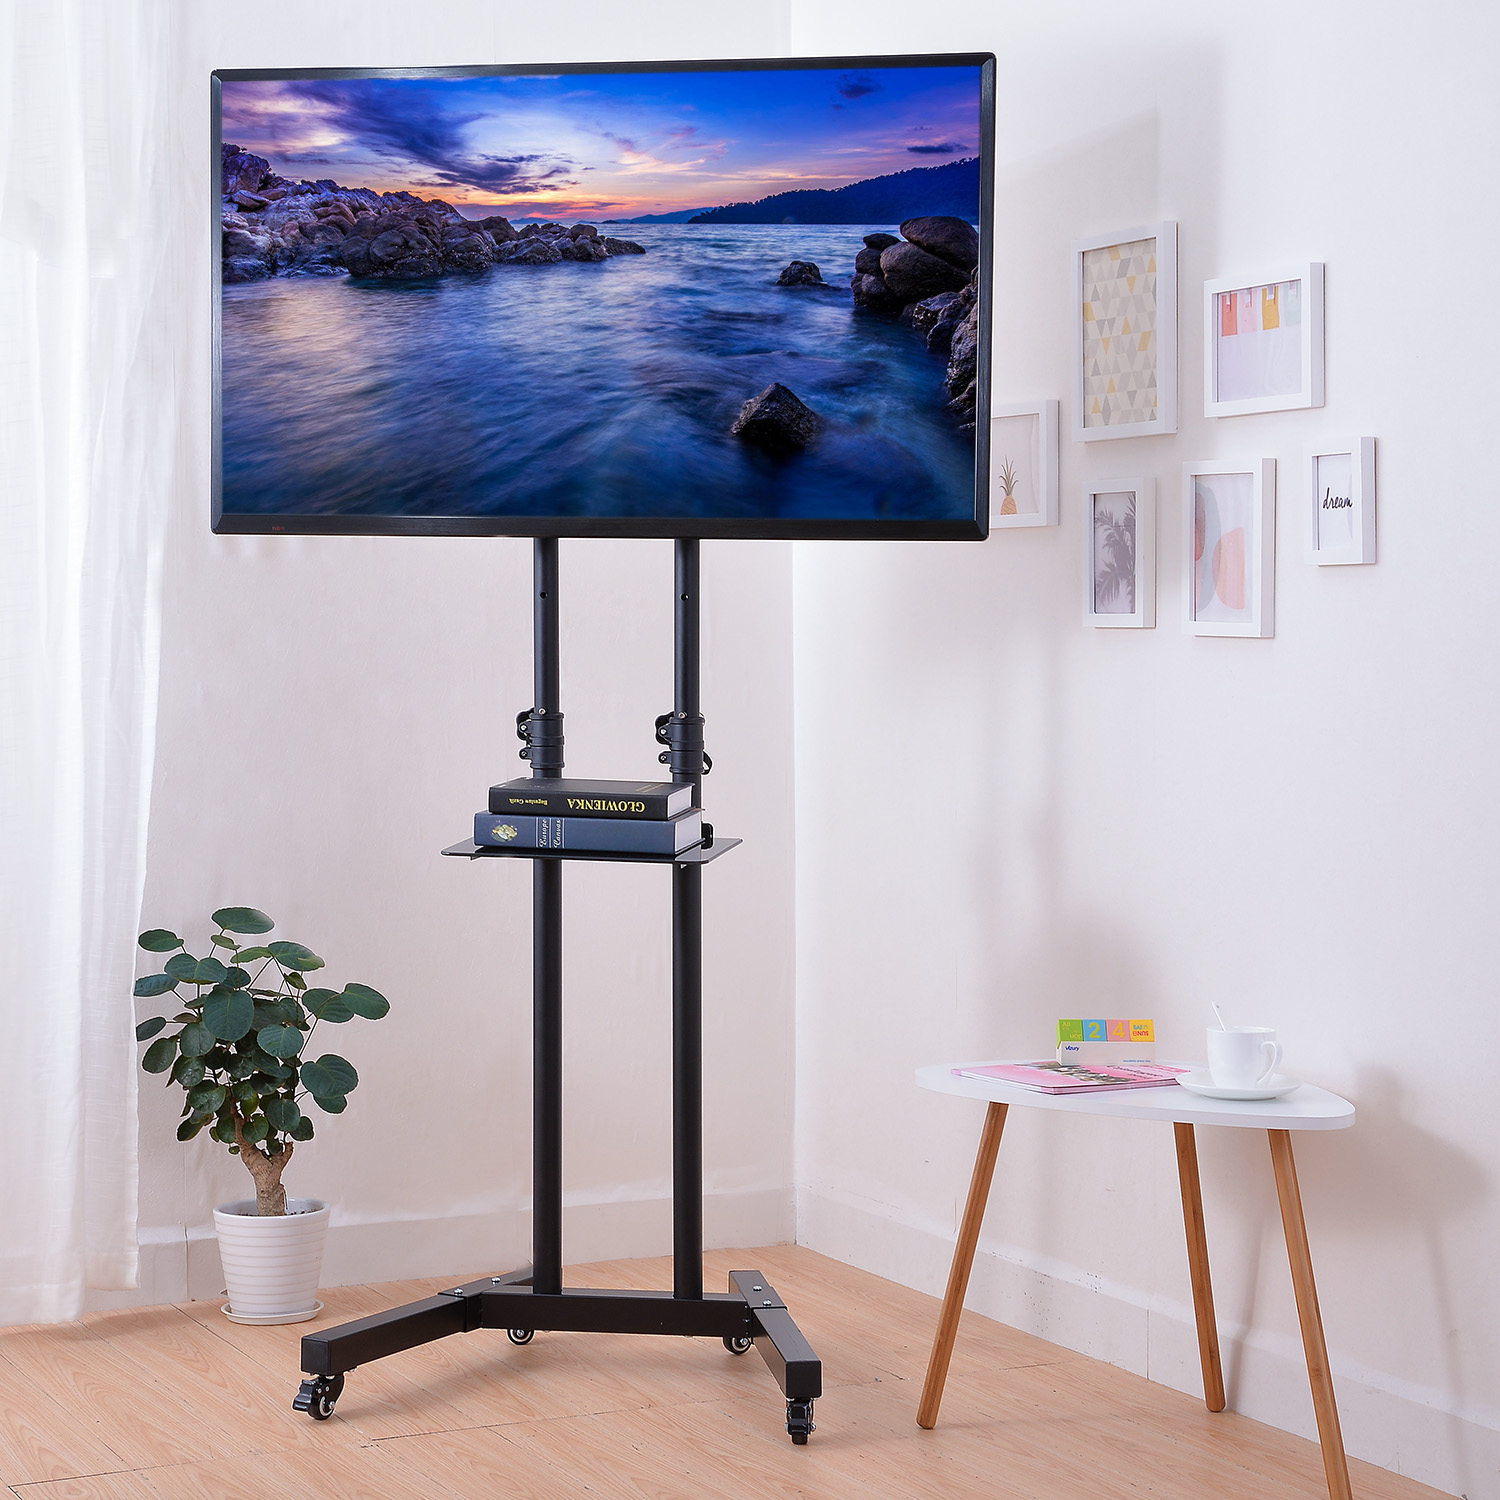 Mllieroo Universal 32-65 Inch Rolling Flat Screen TV Carts Stand Mobile TV Stand with Mount for LED LCD Plasma Flat Panels with Wheels